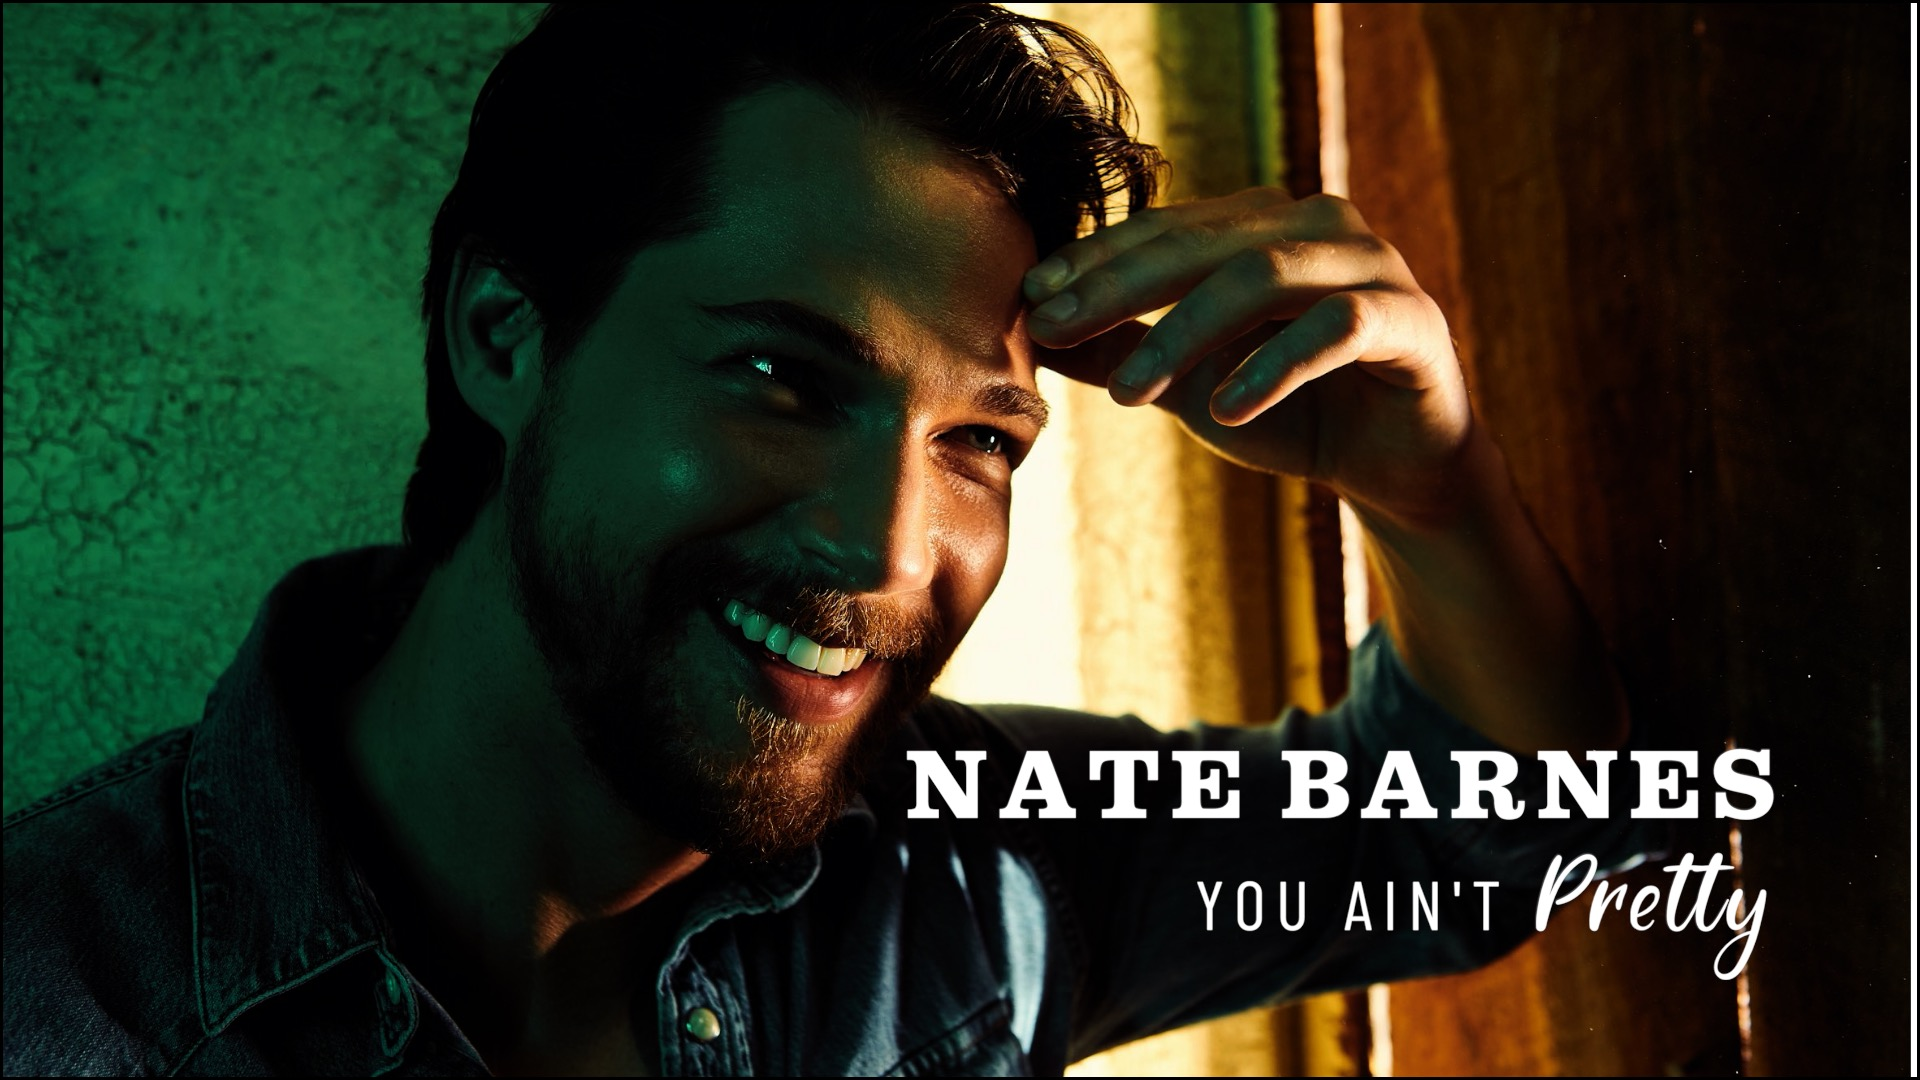 """LYRIC VIDEO FOR NATE BARNES' """"YOU AIN'T PRETTY"""" PREMIERES TODAY EXCLUSIVELY WITH COWBOYS & INDIANS"""